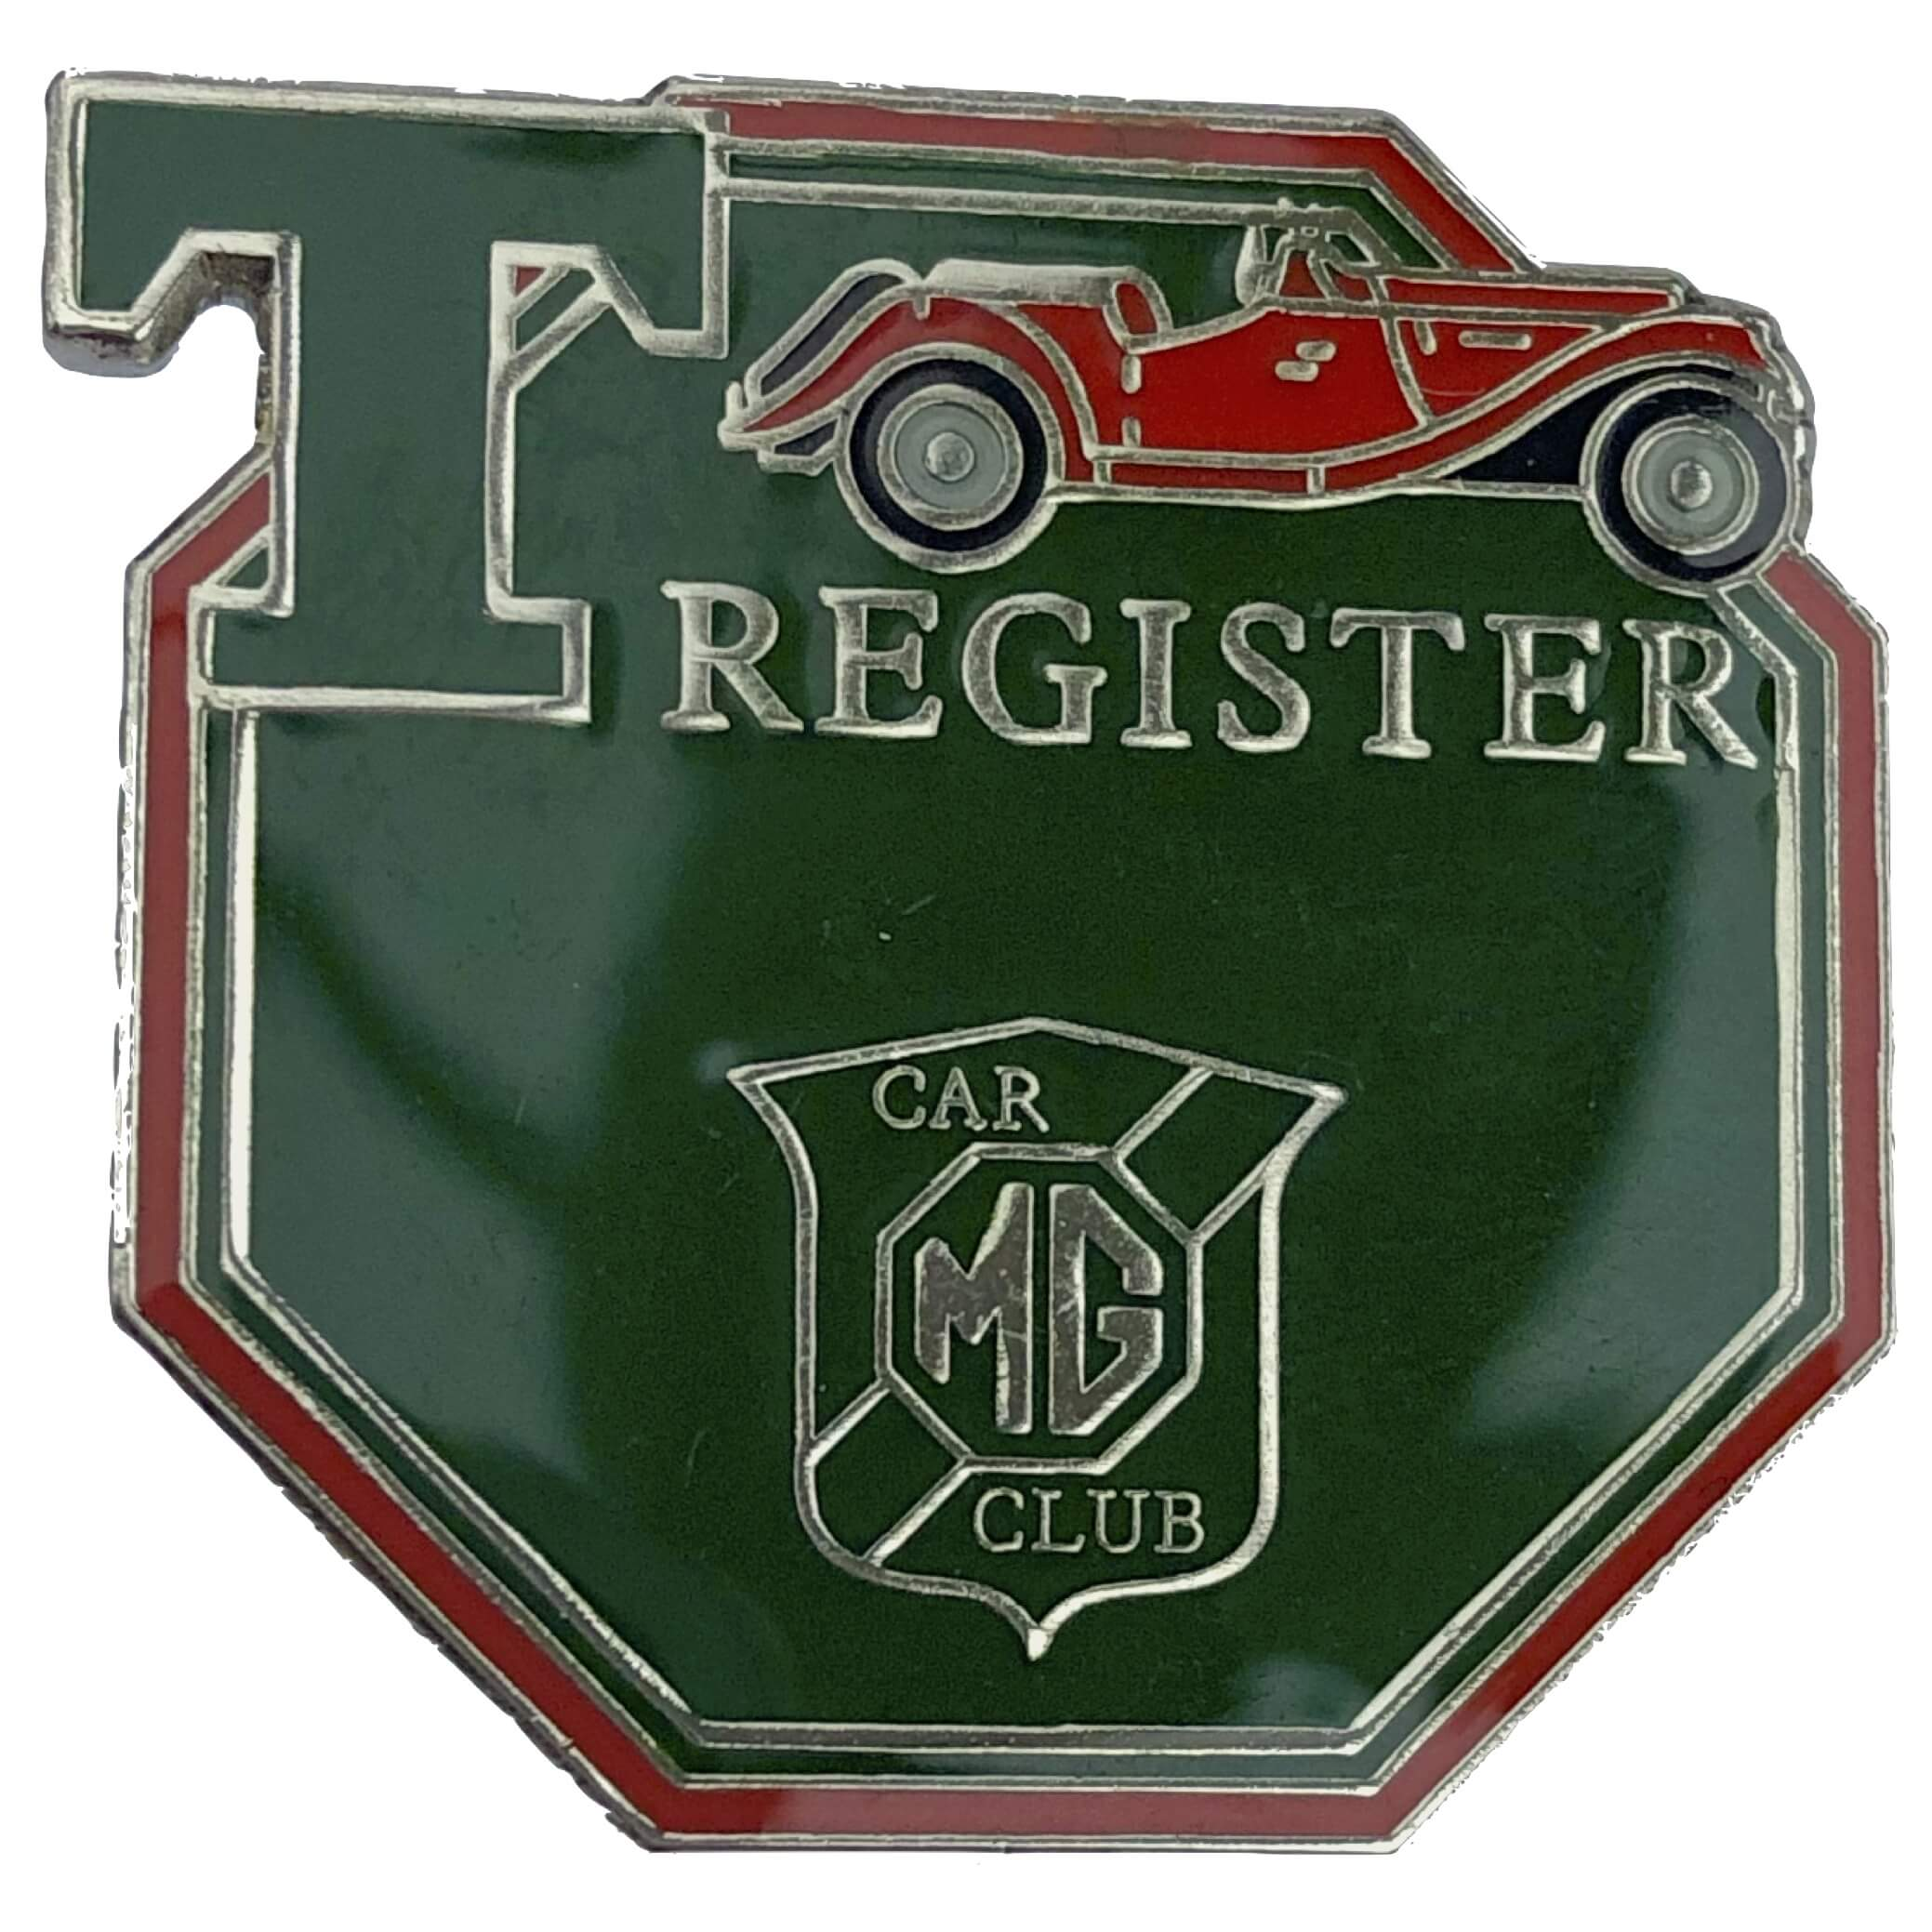 Cars Kleding.Mg Car Club Shop Merchandise And Membership For Every Mg Enthusiast